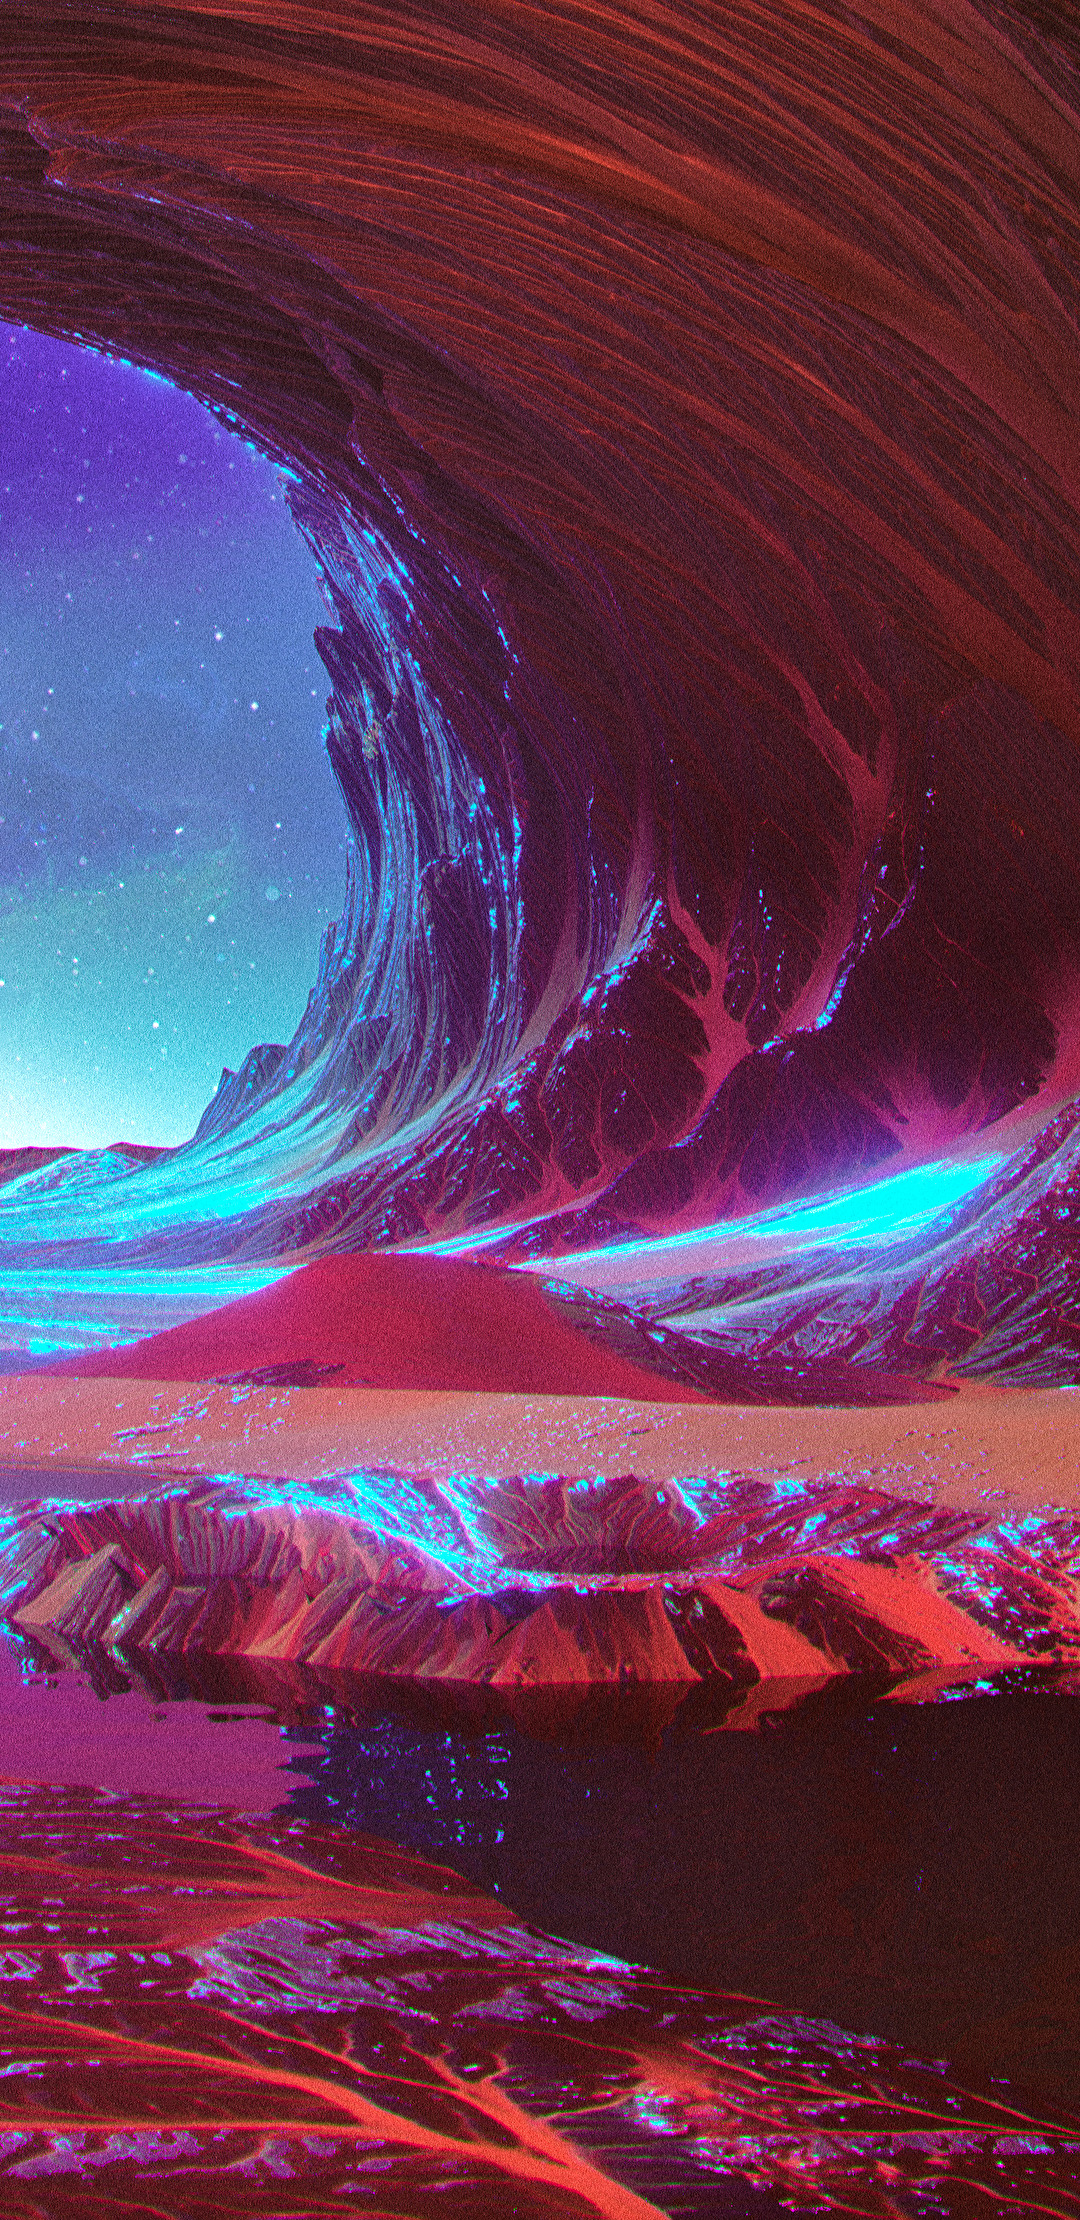 RIDE.WAVE (Beeple) [3840x2160] : Wallpapers